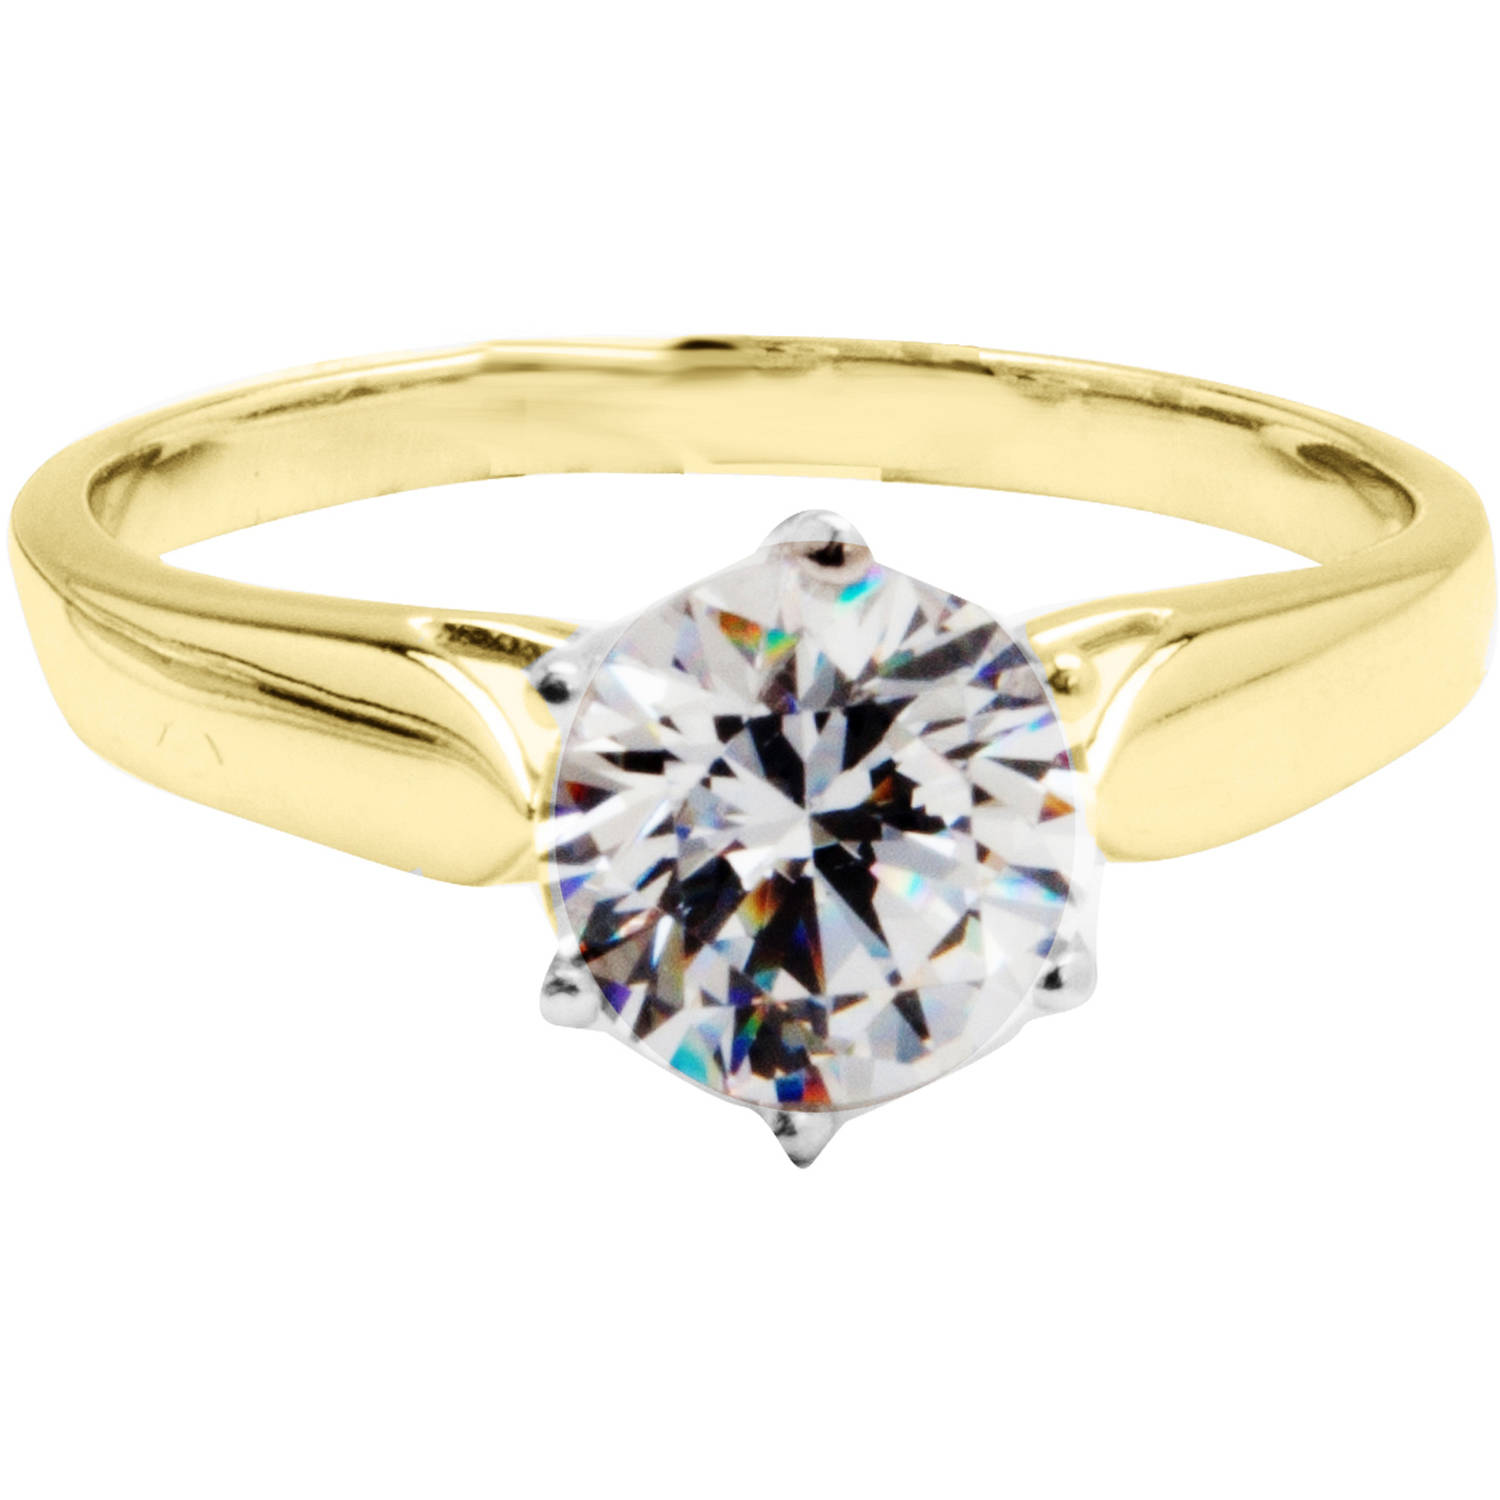 Believe by Brilliance 1.80 Carat T.G.W. CZ Round Solitaire 10kt Yellow Gold Engagement Ring